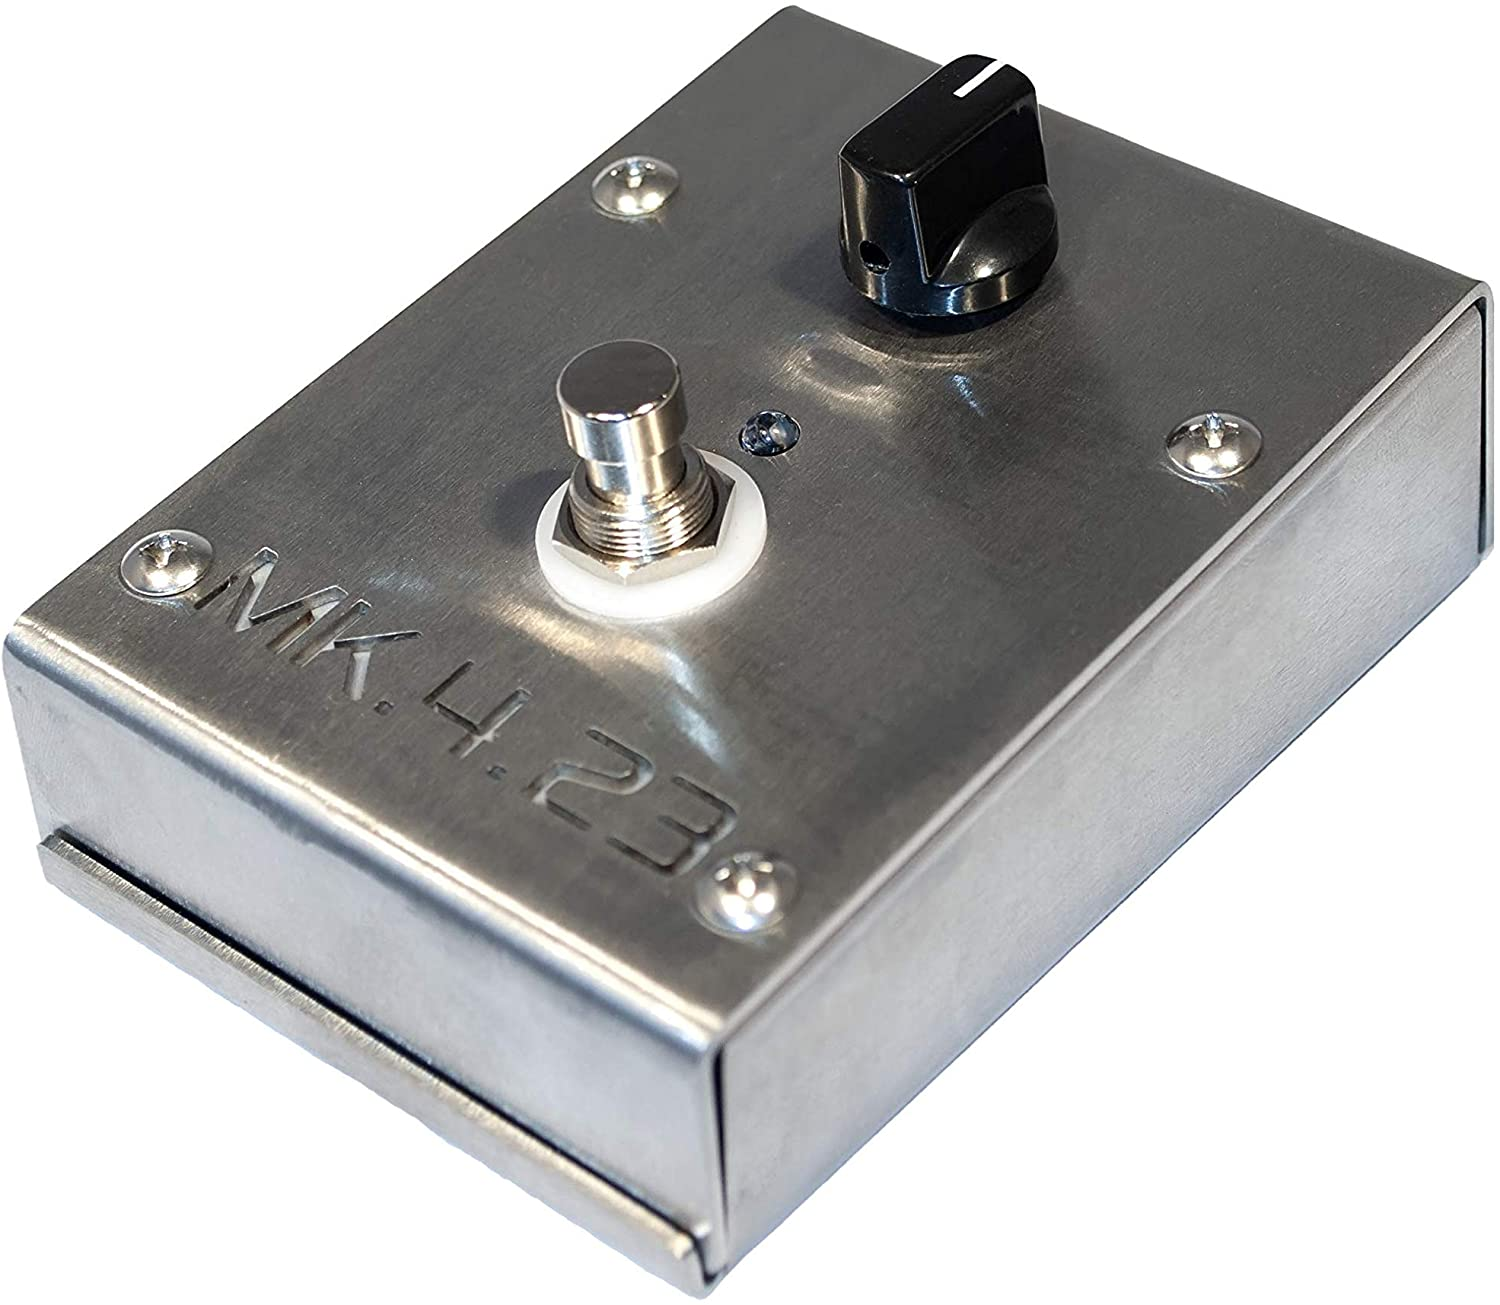 MK 4.23 Clean Boost Pedal - Brushed Steel